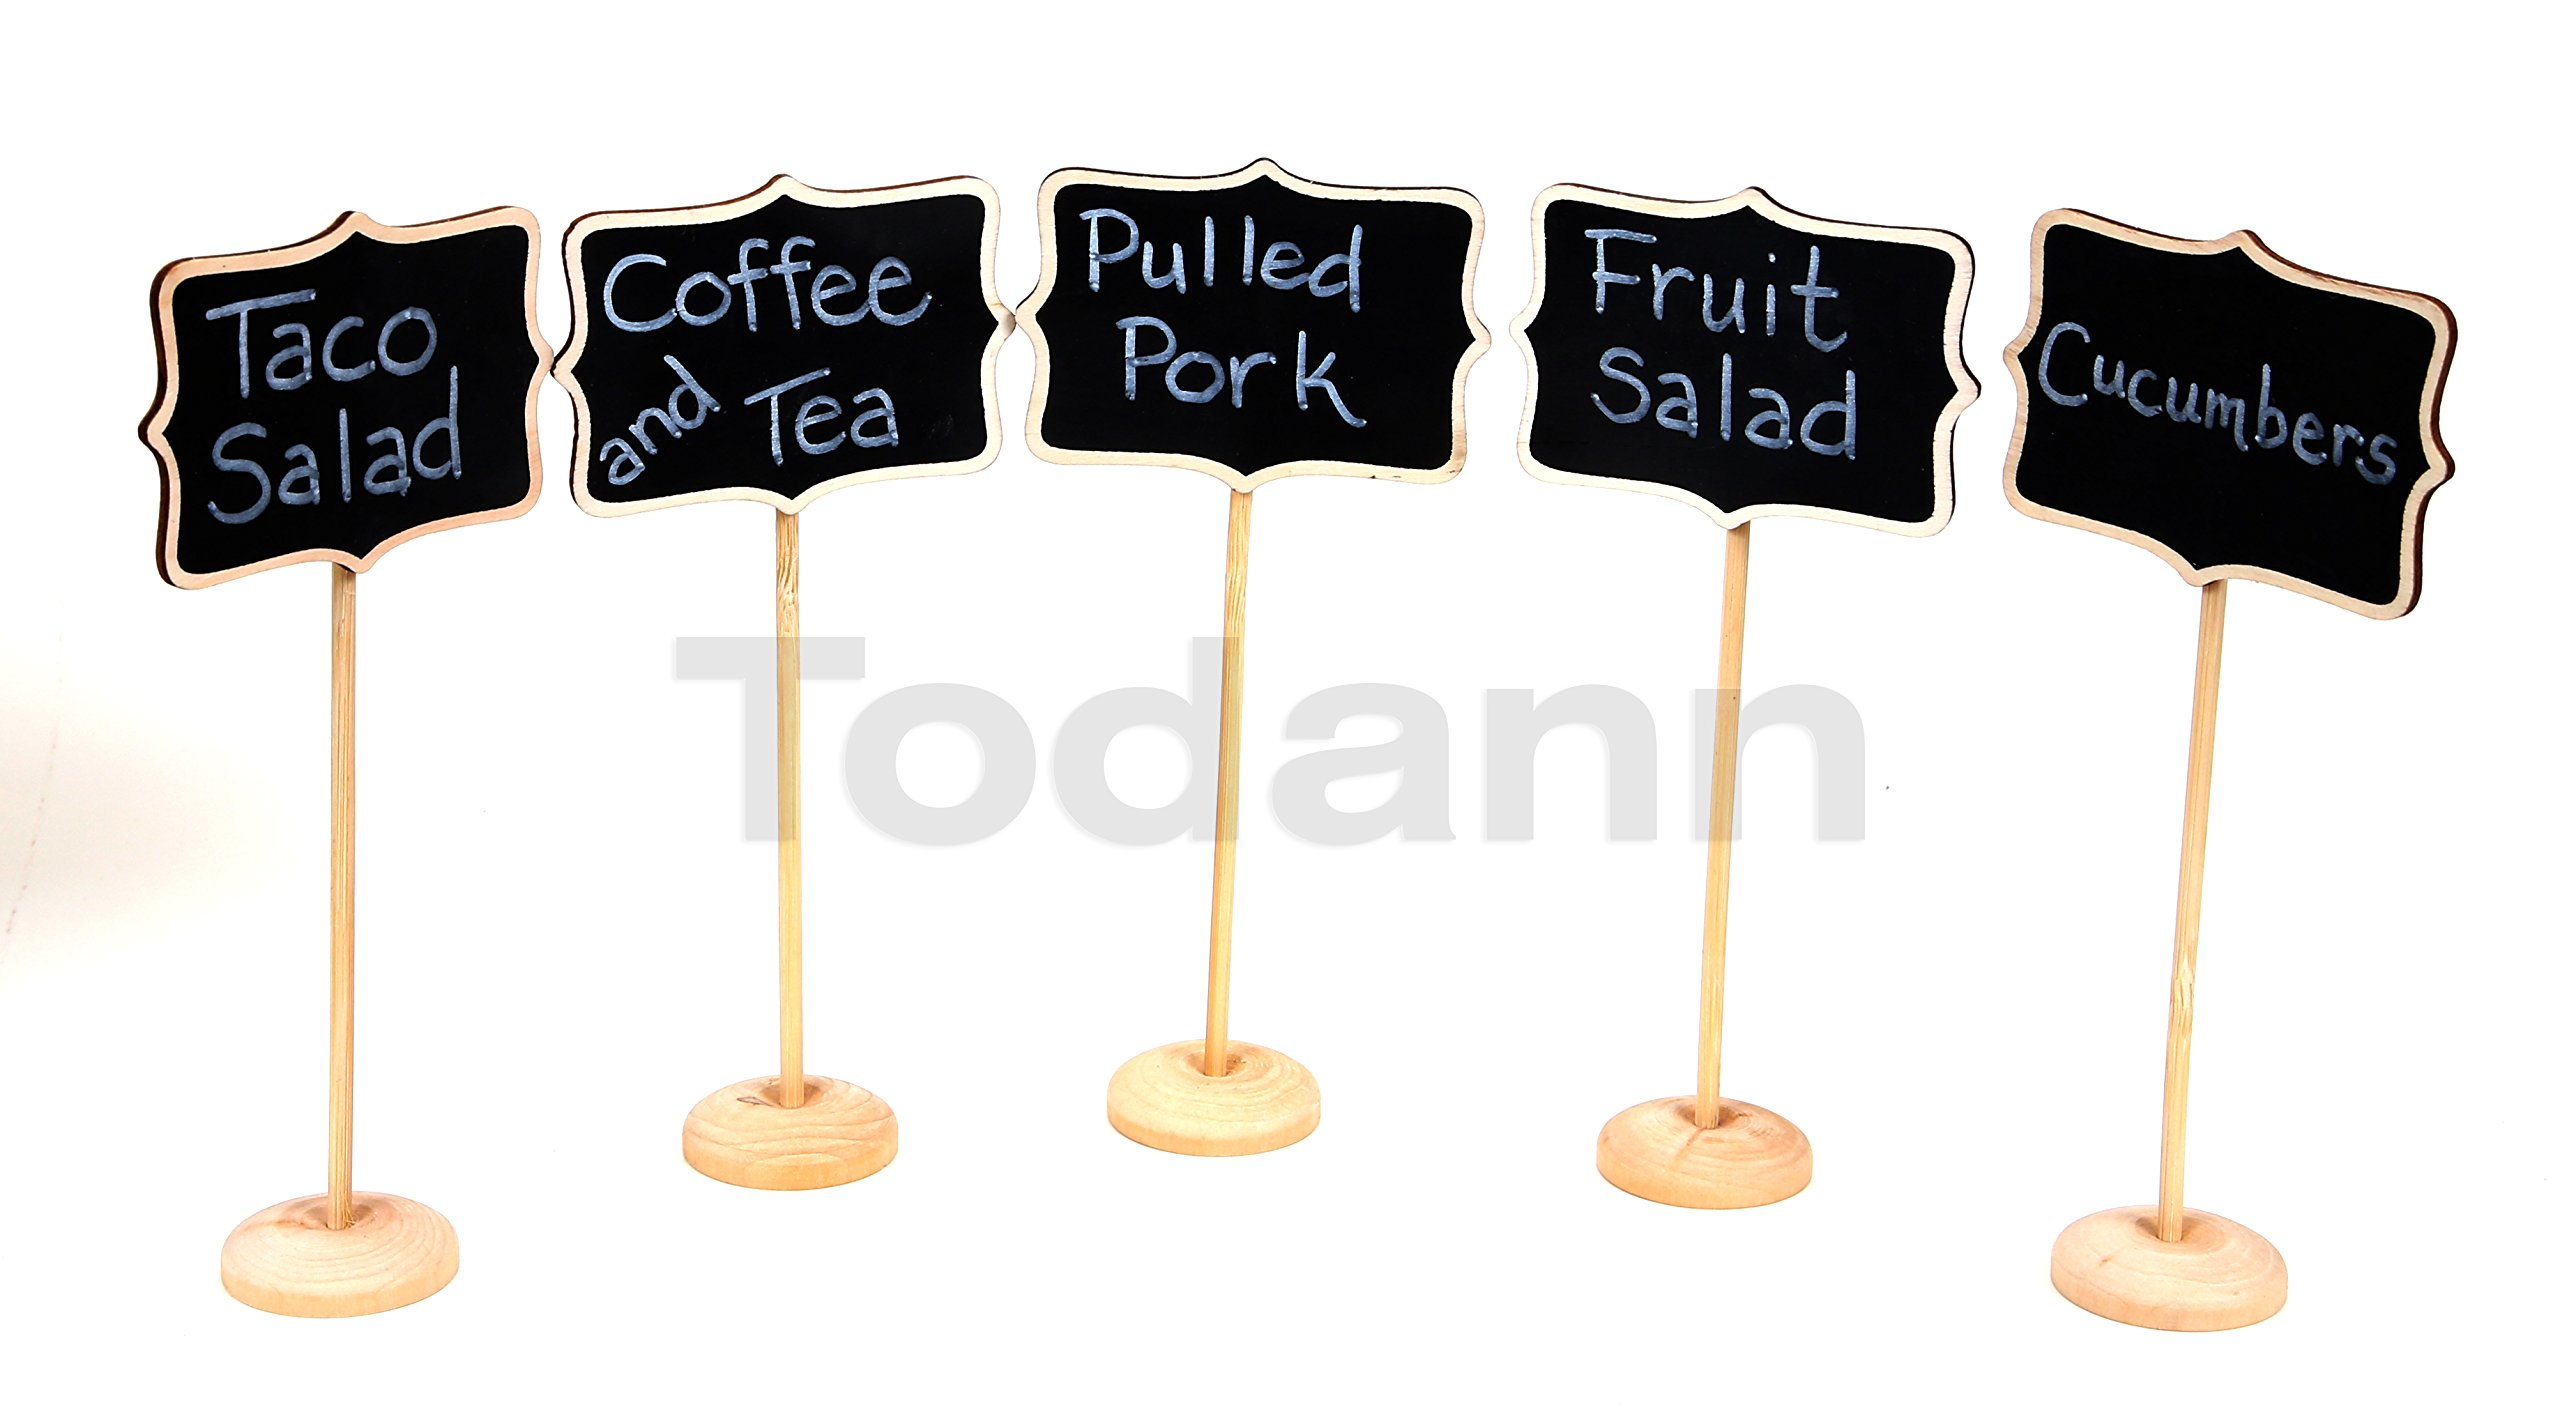 10 Piece Mini Rectangle Chalkboard Stands / Signs, White Liquid Chalk Pen & Erasing Sponge, use for Weddings, Parties, Table Numbers or Place Cards by Todann (Image #4)